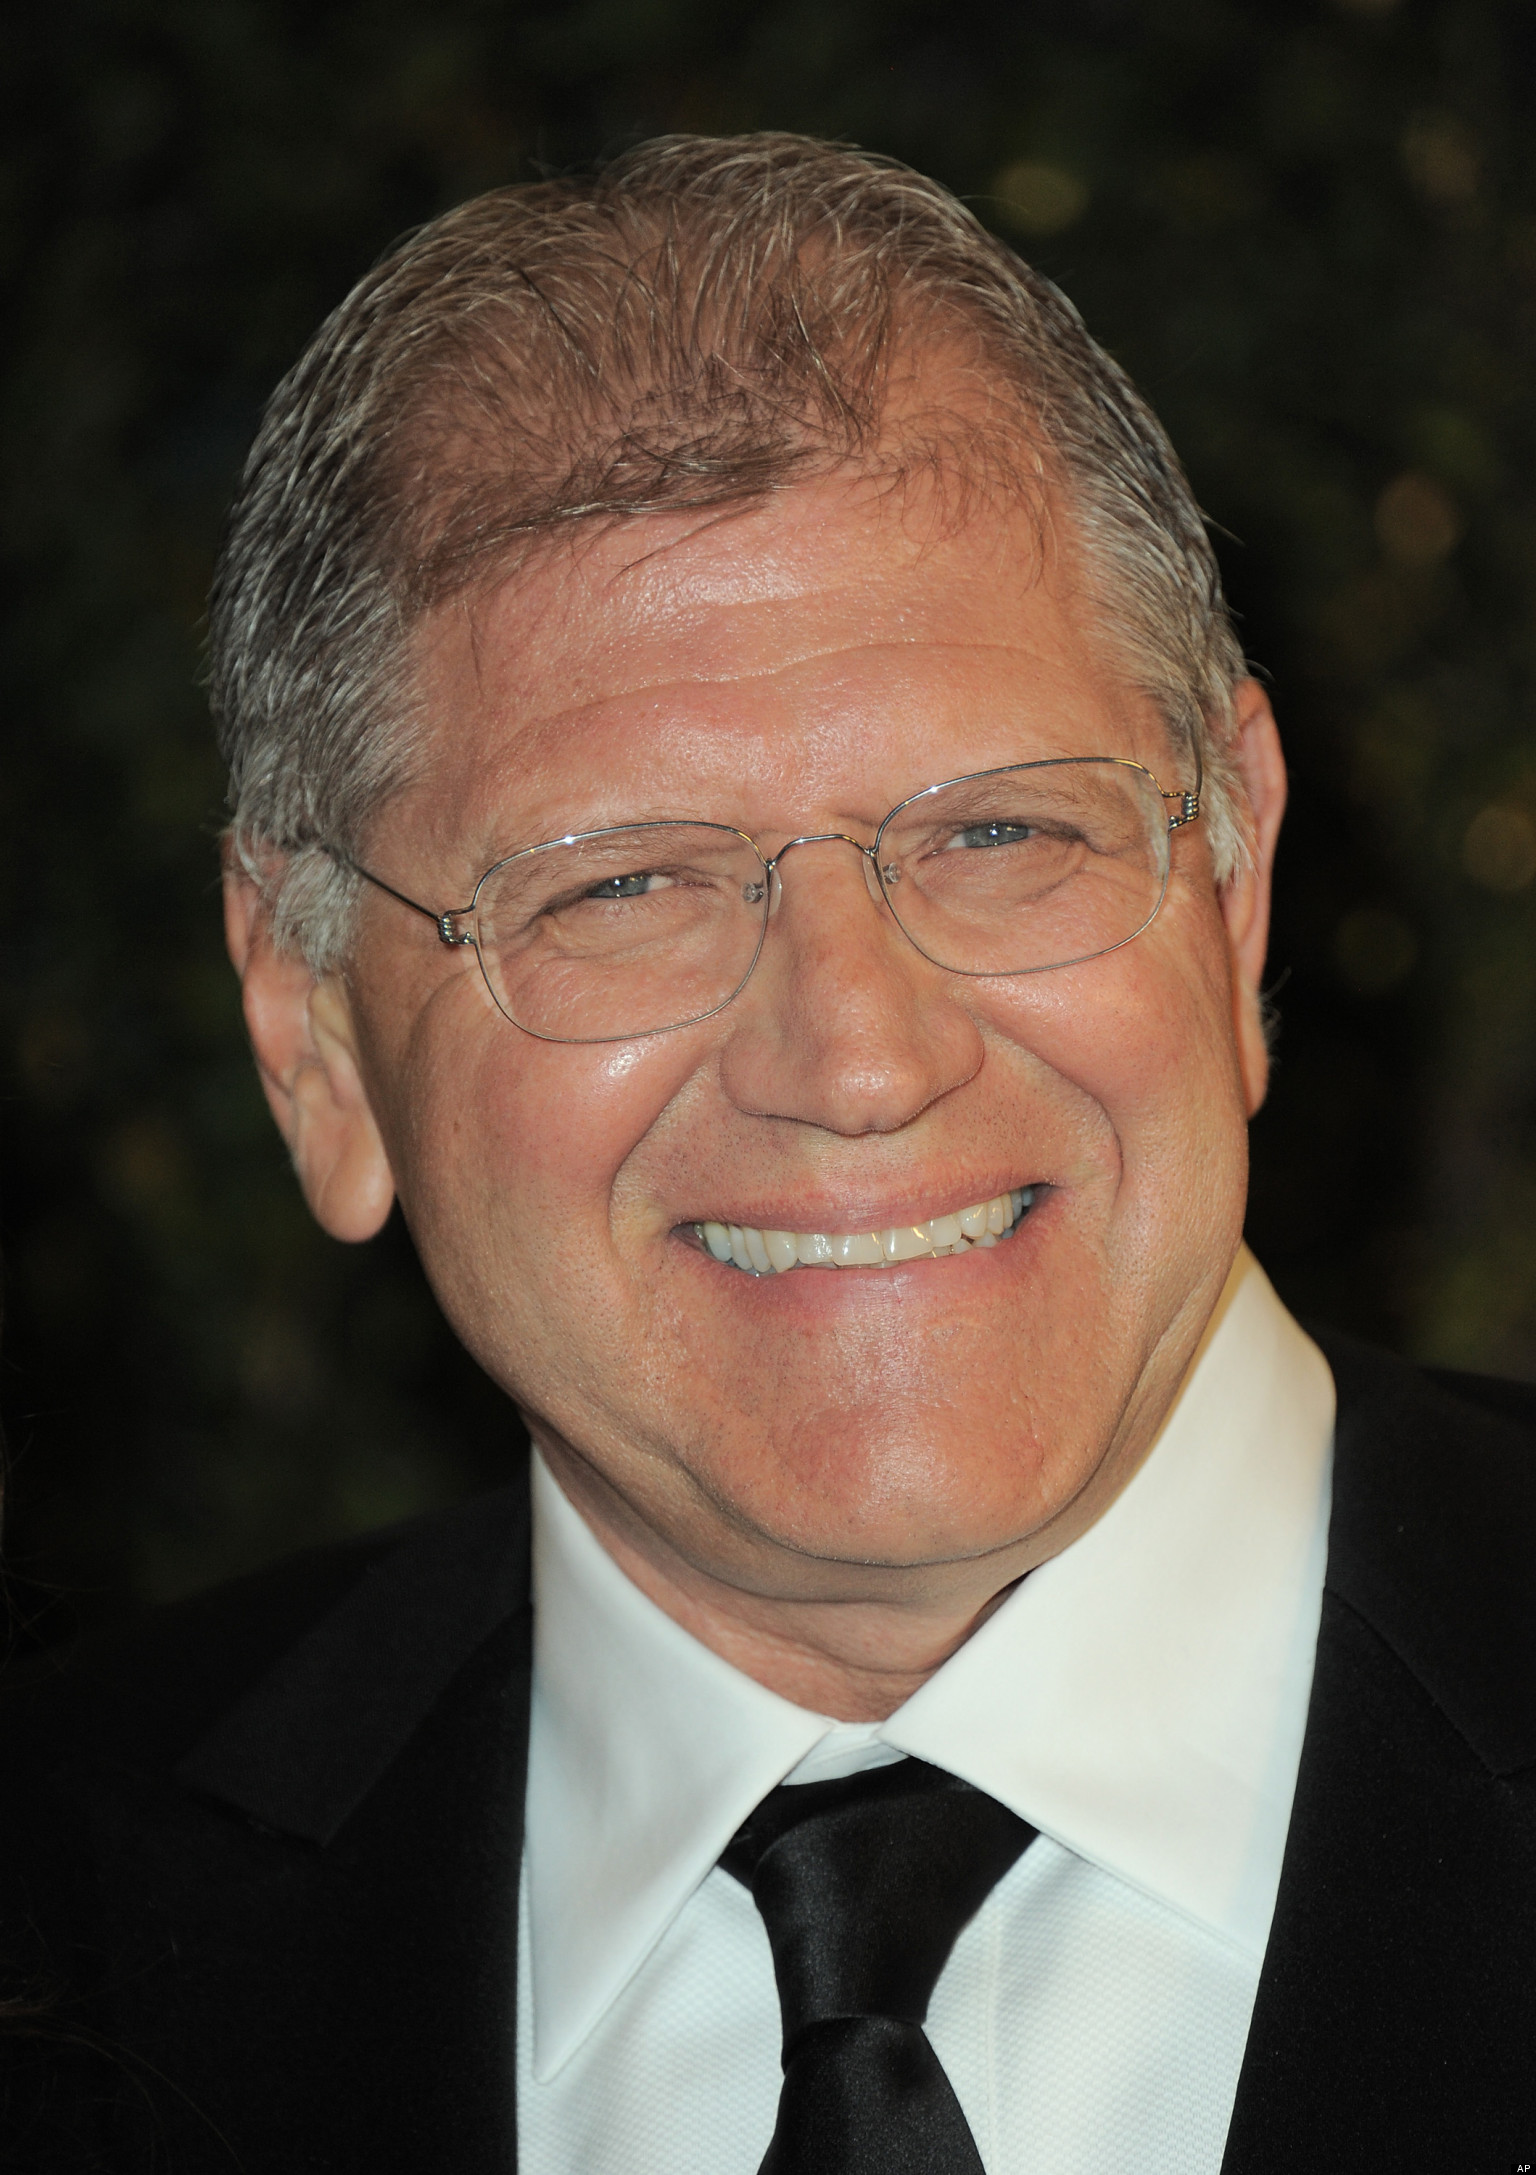 The 66-year old son of father Alphonse Zemeckis and mother Rose Zemeckis, 183 cm tall Robert Zemeckis in 2018 photo